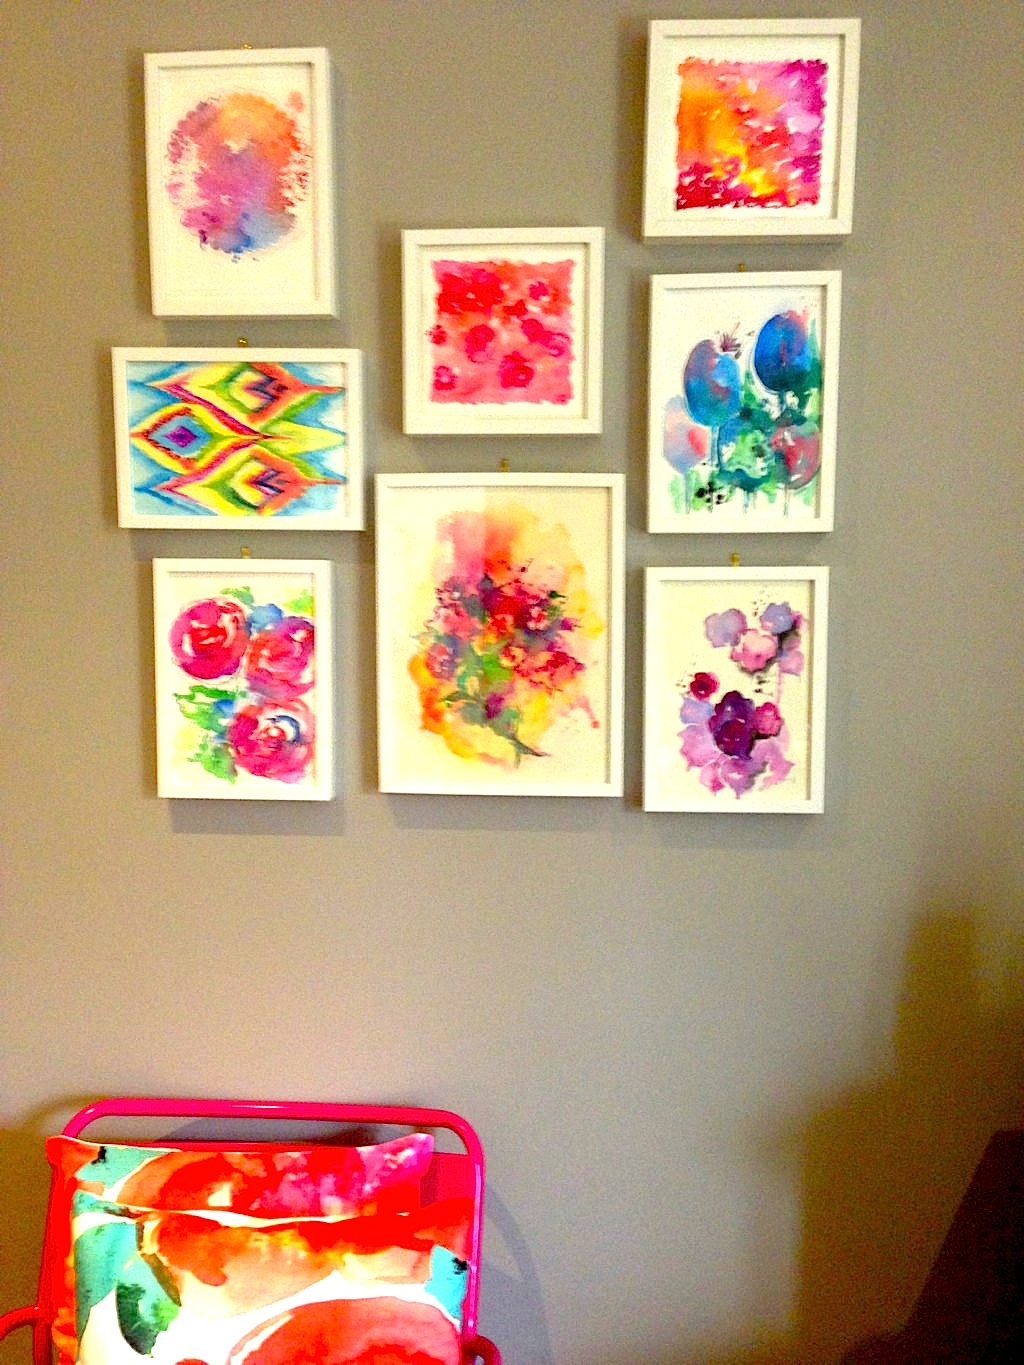 Choosing art for your home - My Watercolors Found New Home In Australia